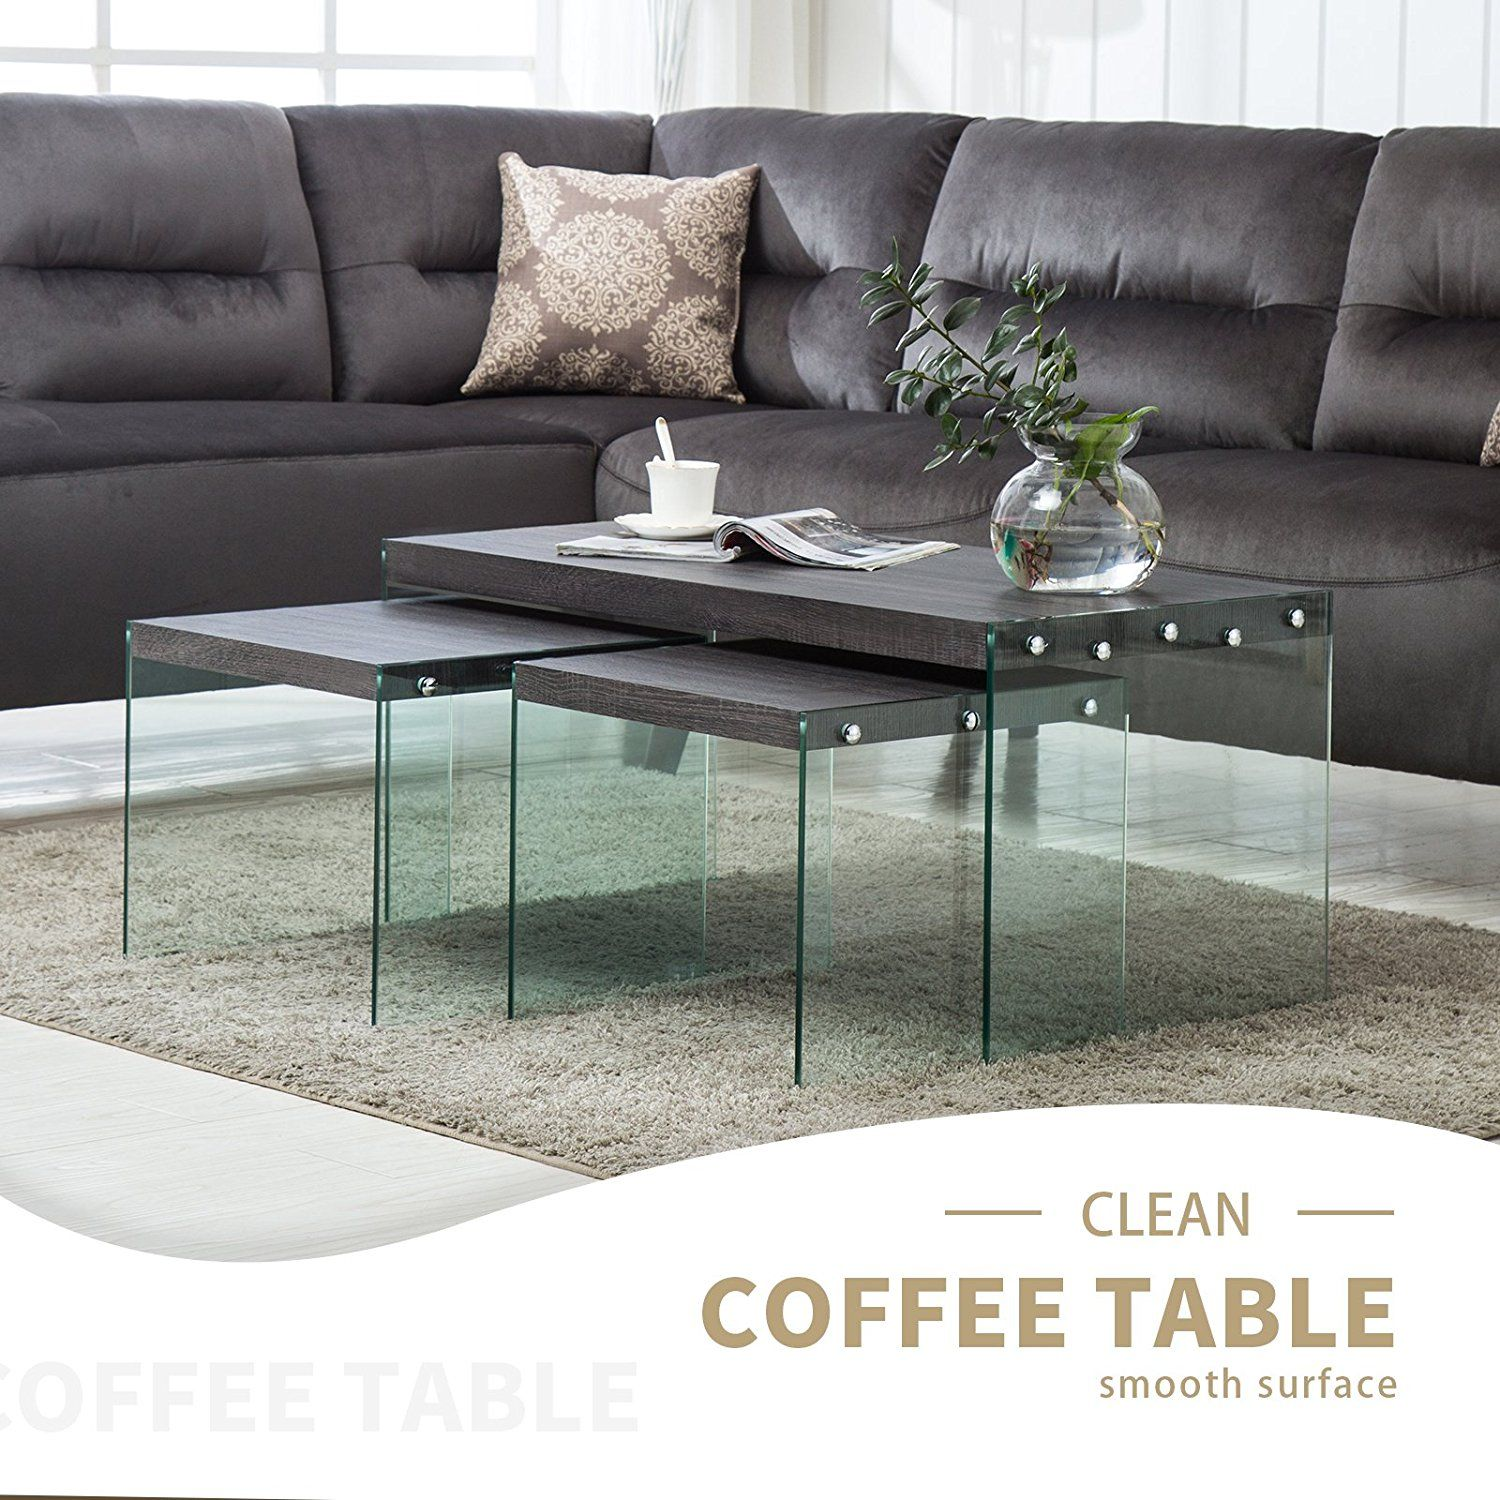 Amazon Com Mecor Set Of 3 Nesting Table Side End Coffee Table Wood Top Tempered Glass Legs Living R Coffee Table Black Furniture Living Room Living Room Table [ 1500 x 1500 Pixel ]